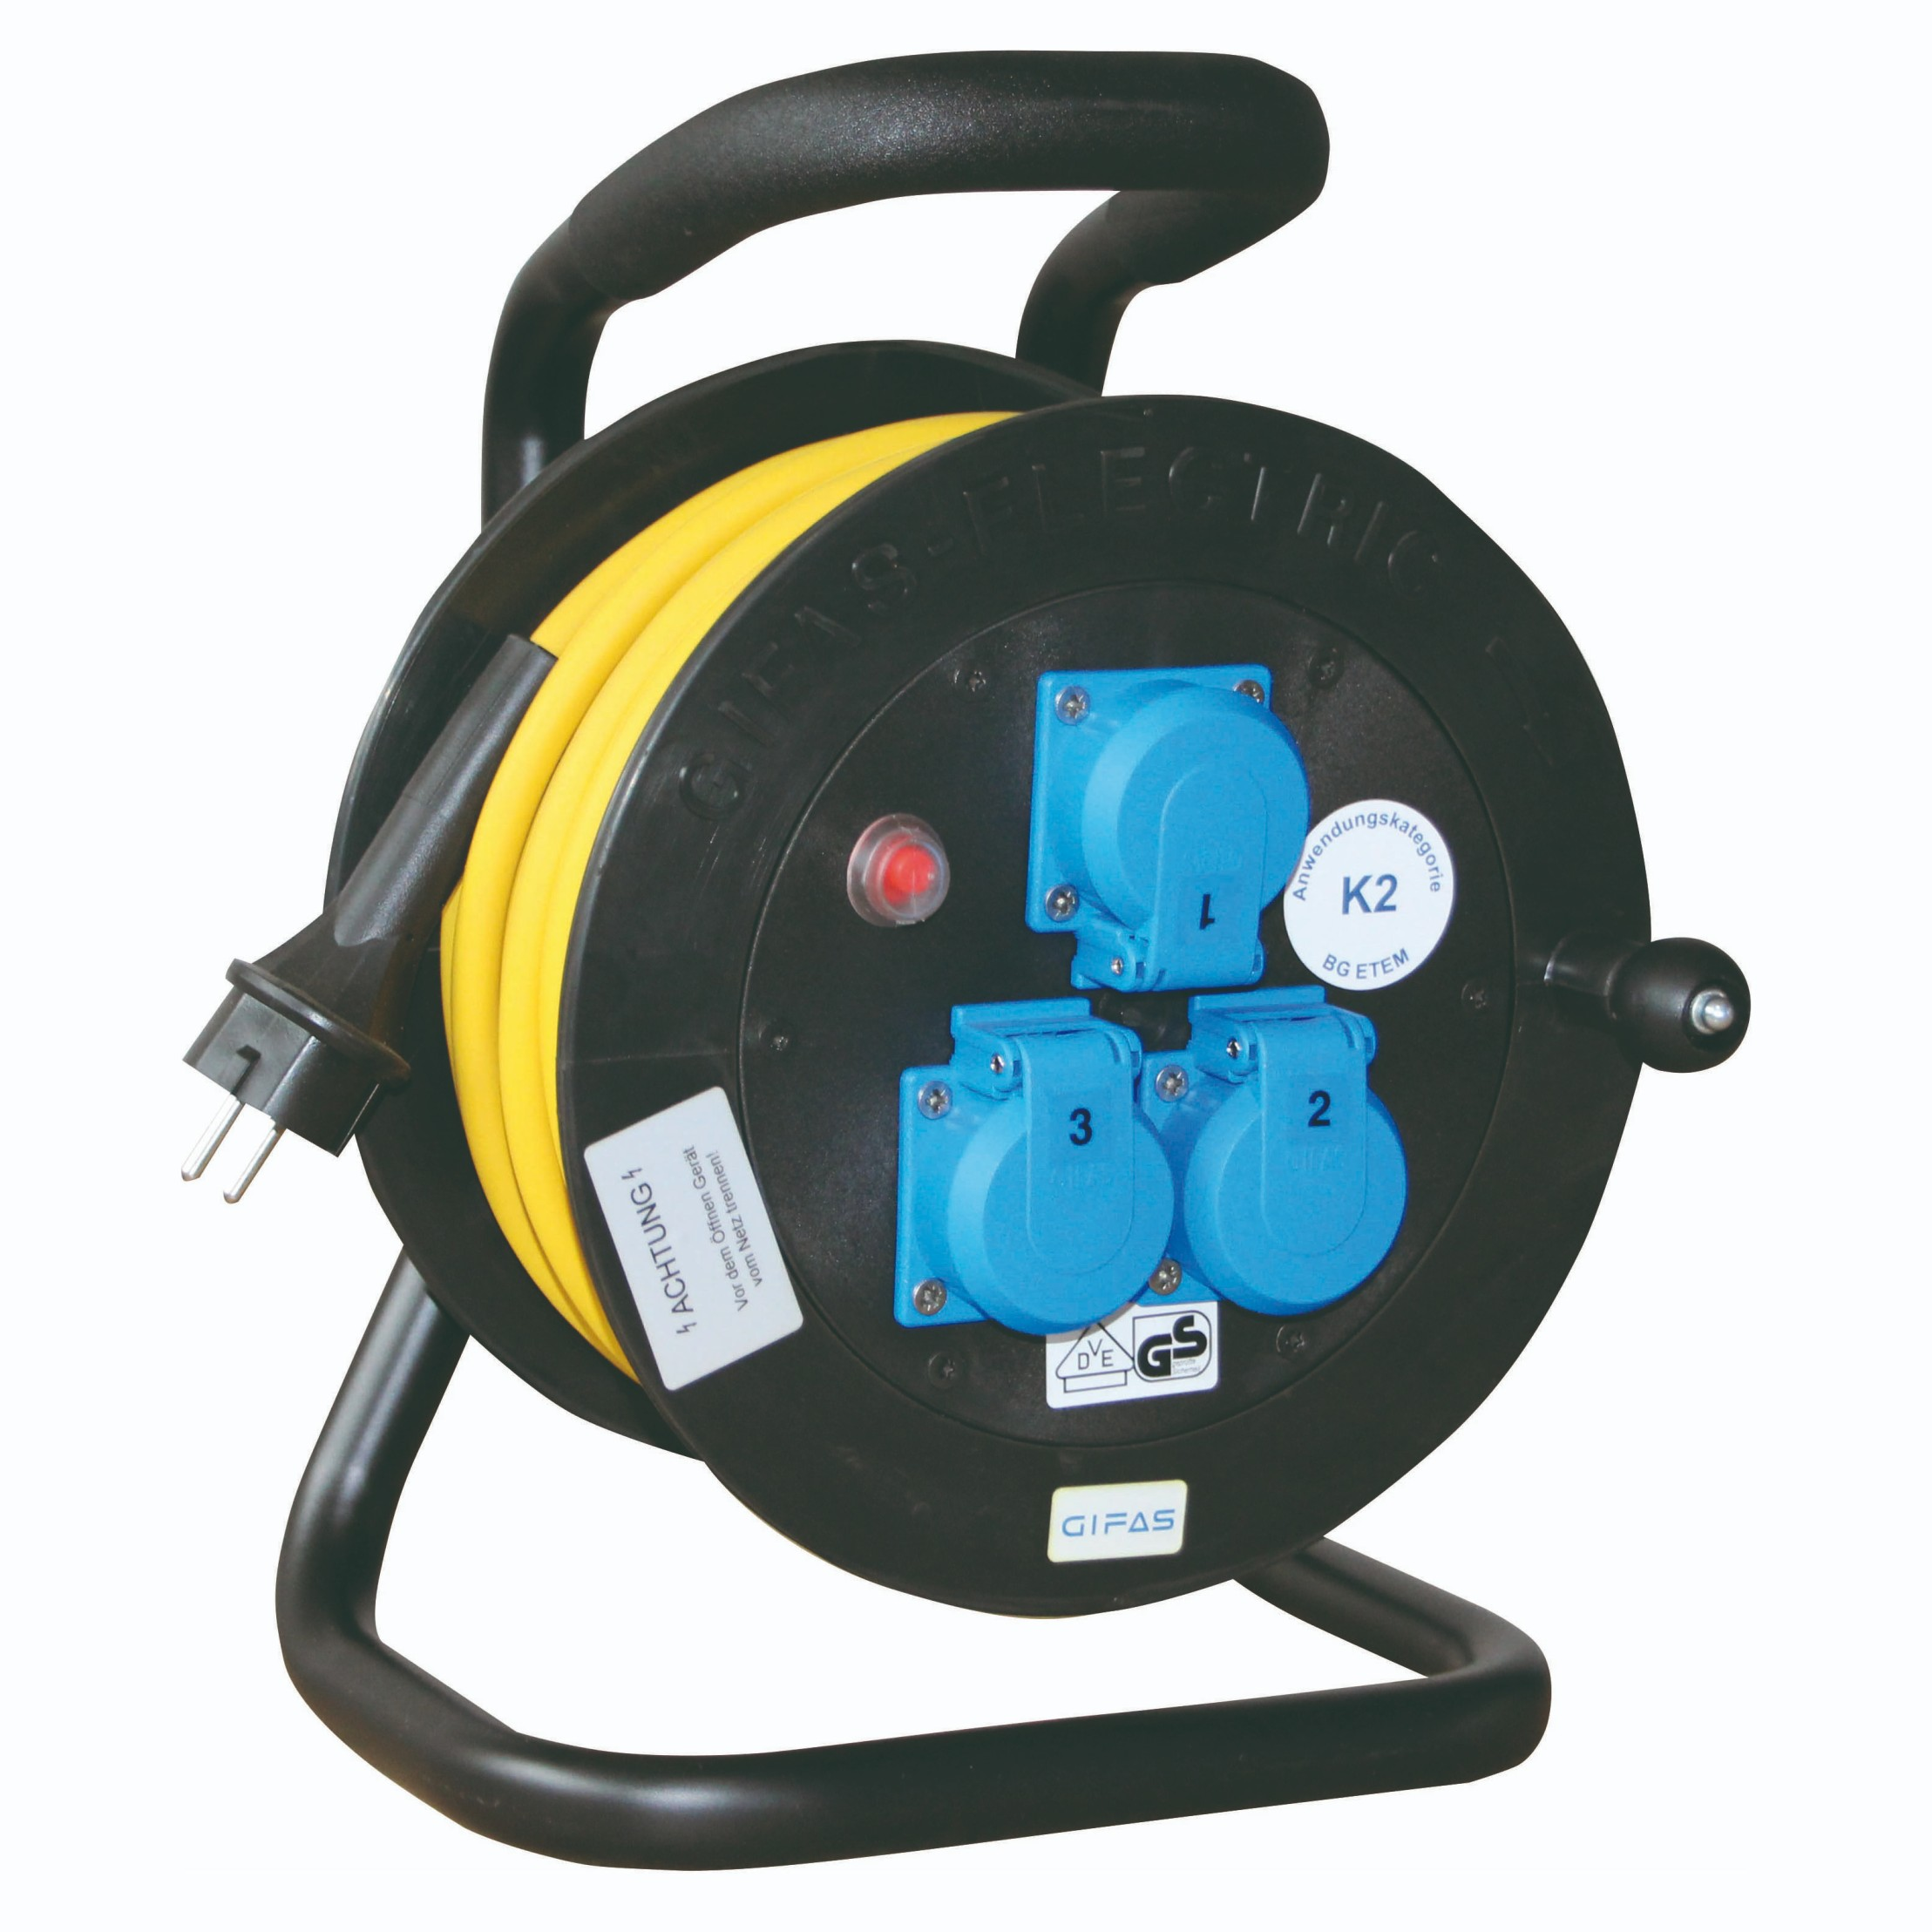 GIFAS Solid Rubber Cable Reel - Type 501 (282286, 255873)